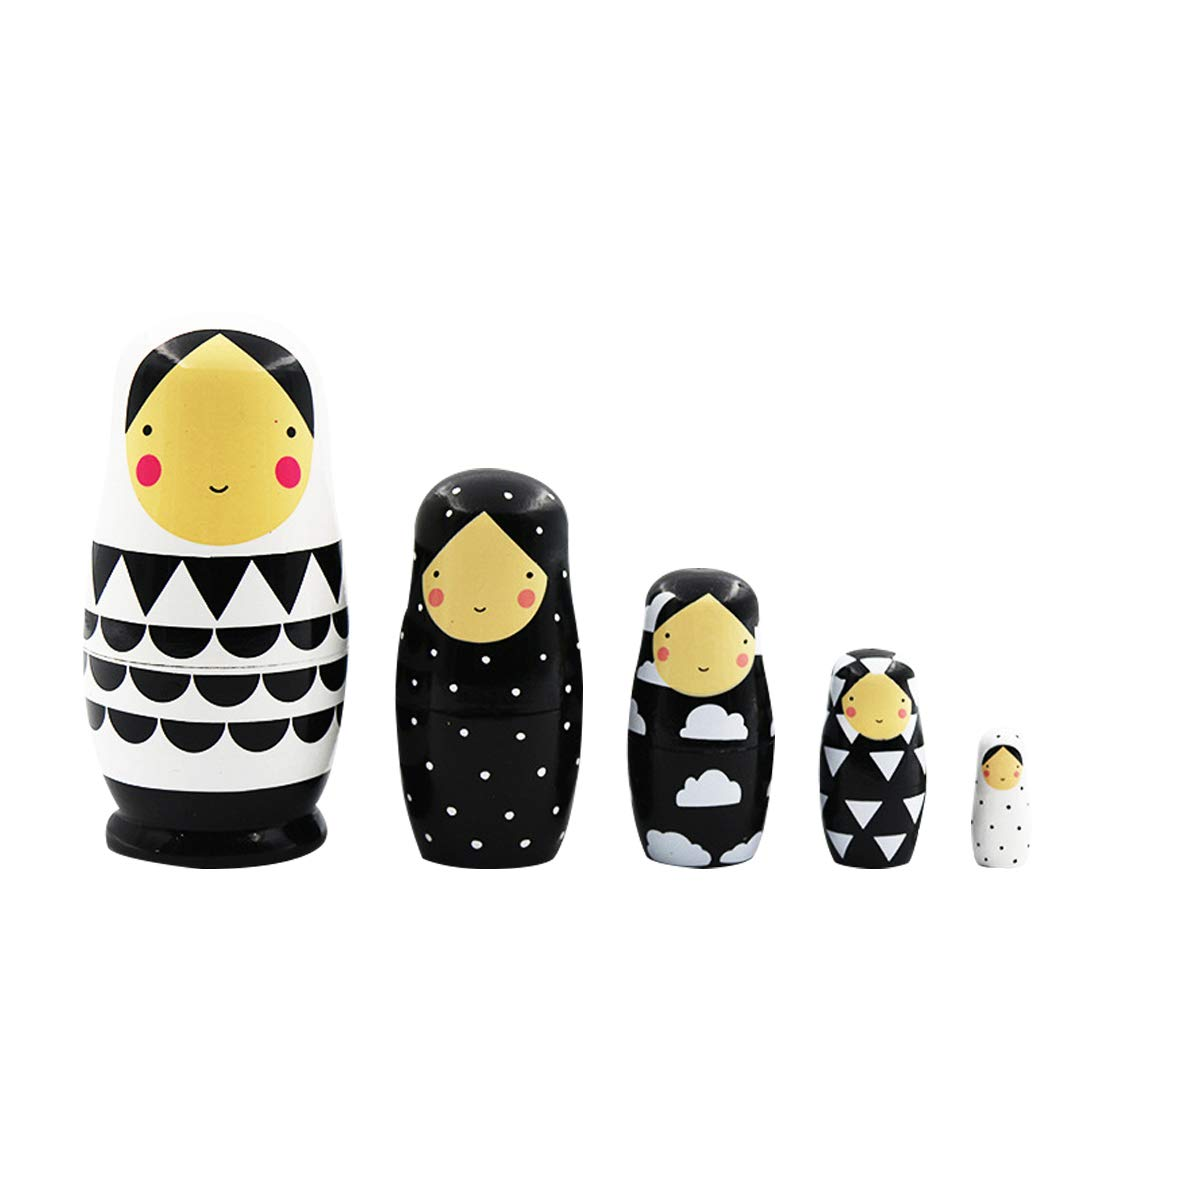 Simple Black and White Dotted Wooden Nesting Dolls Matryoshka Russian Doll Stacking Toys Set of 5 Triangles Semicircles Clouds Pattern for Home Decoration Kids Gifts by Guifni